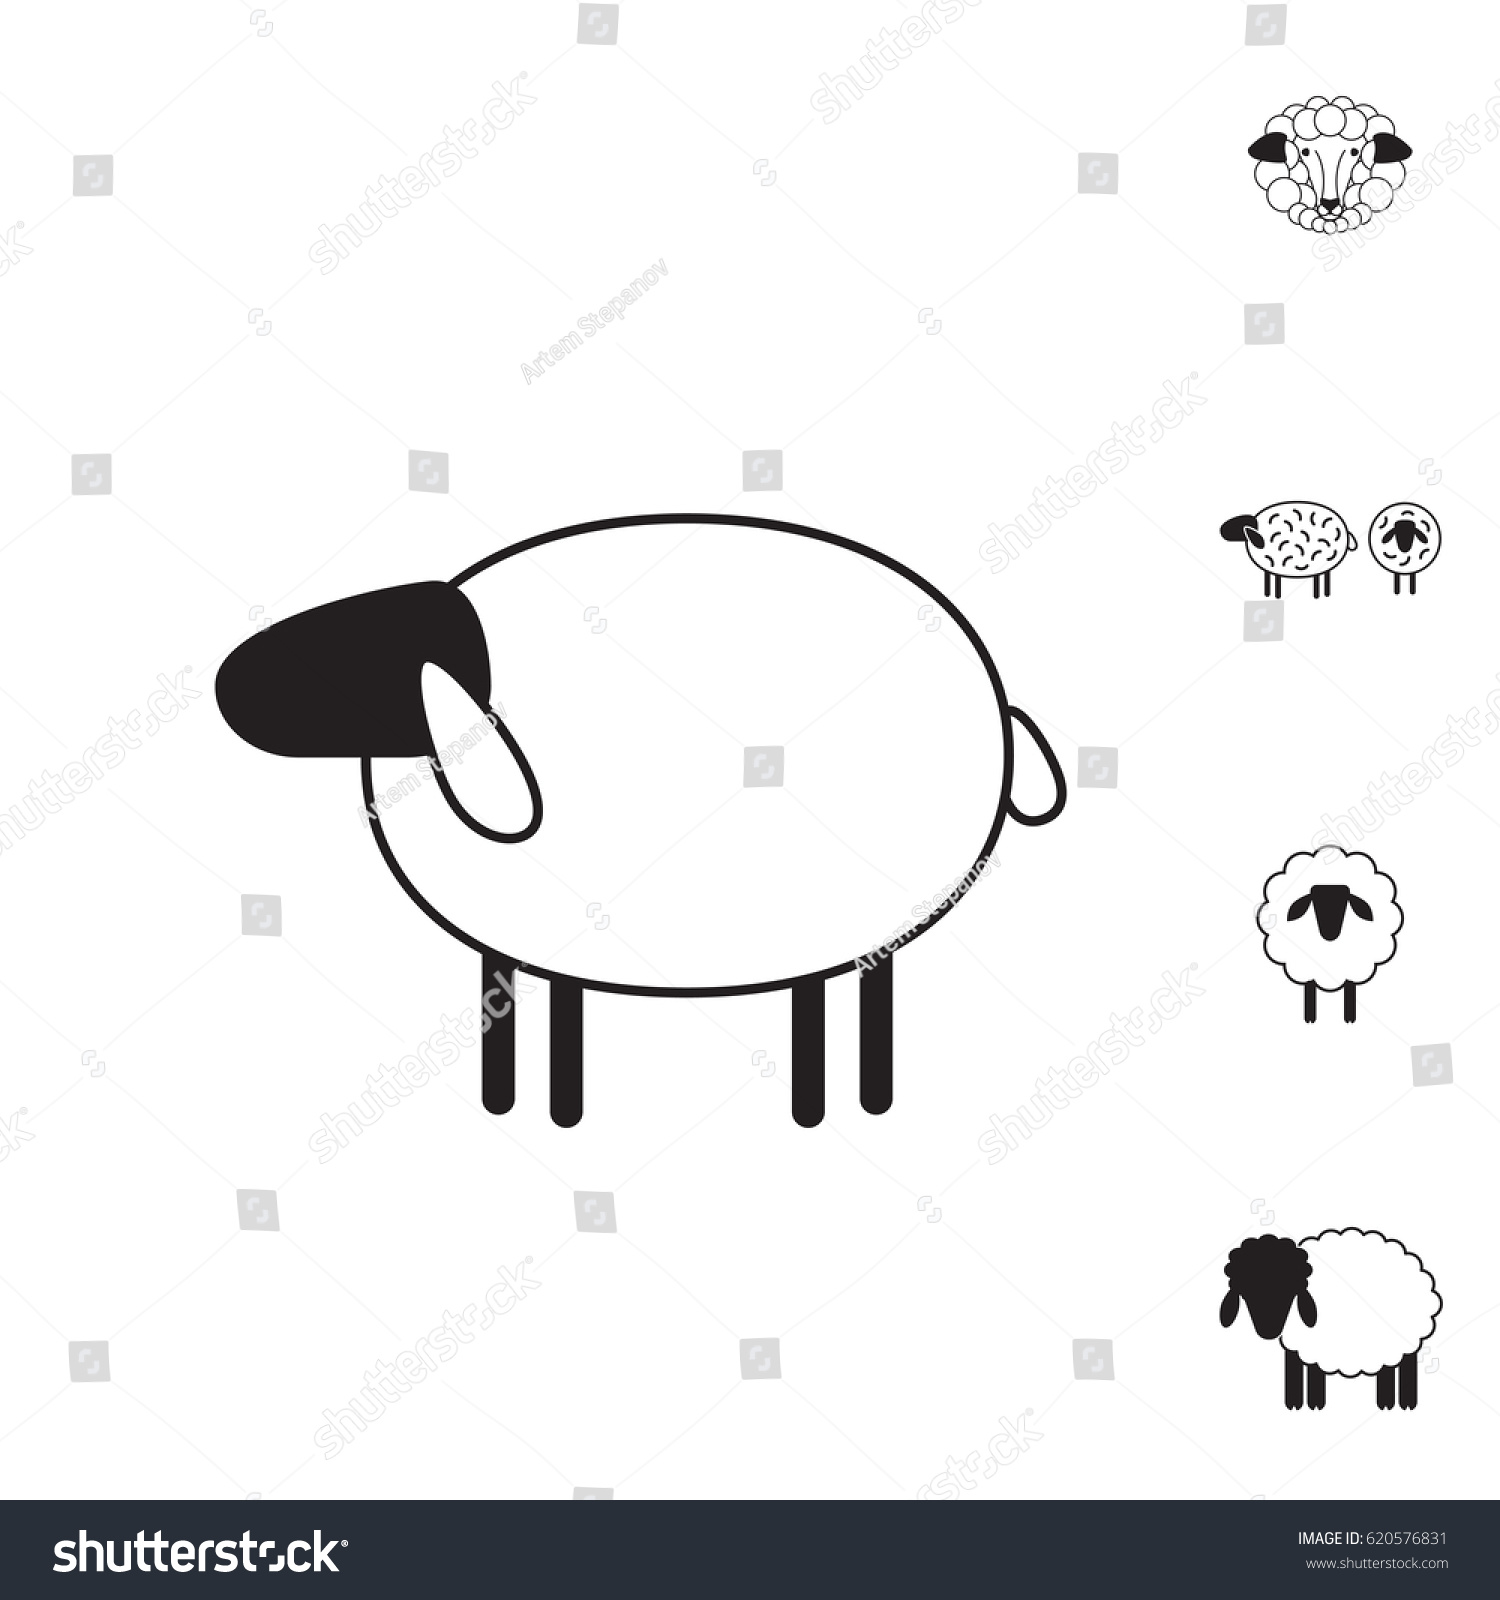 sheep head template eliolera com